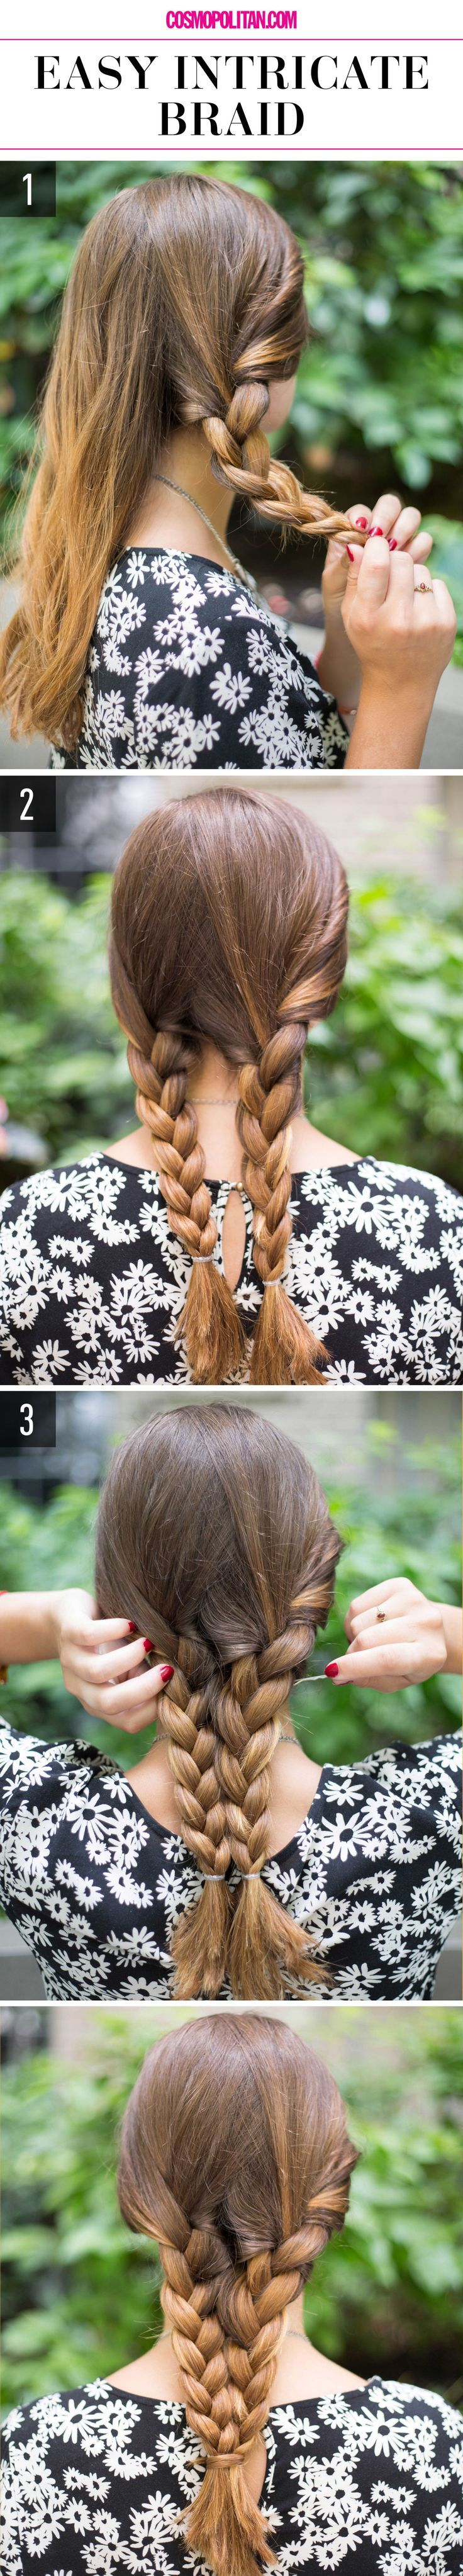 Super-Easy Hairstyles for Lazy Girls Who Can't Even